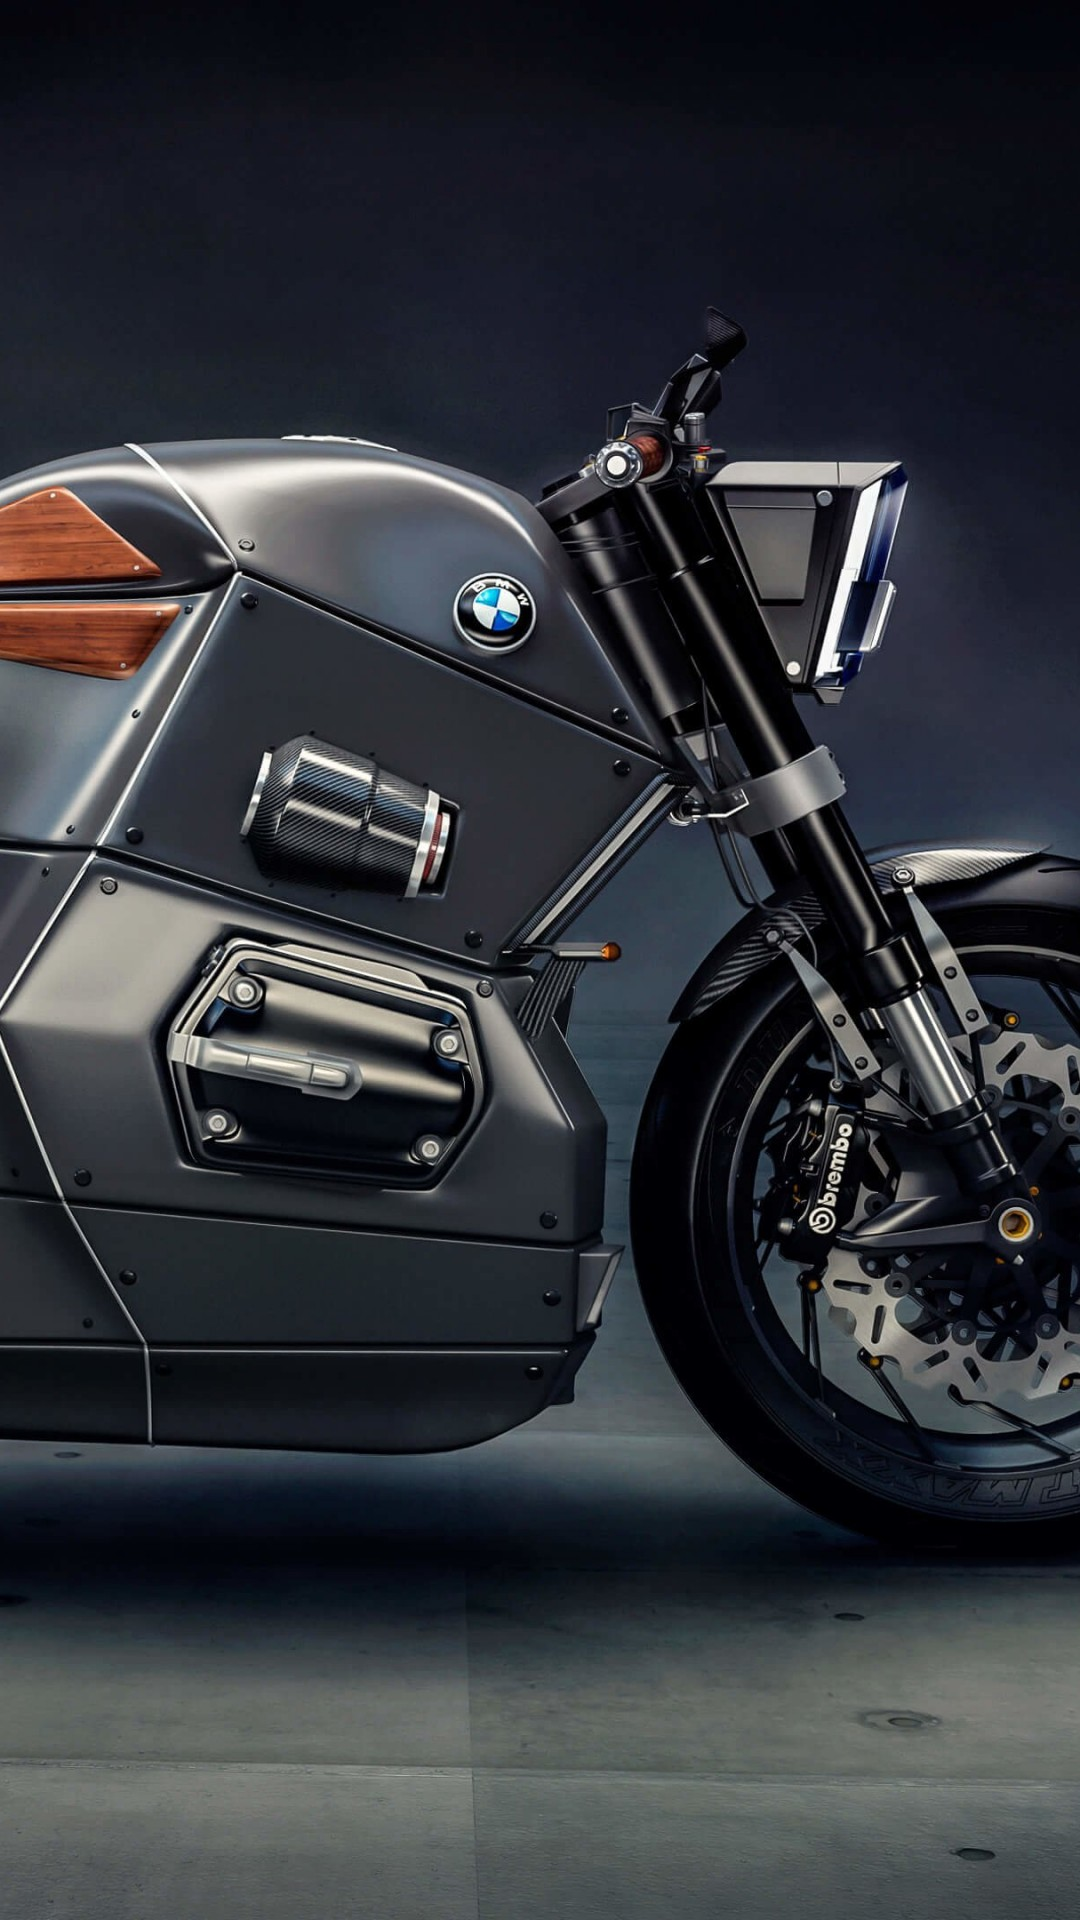 BMW M Bike Concept Wallpaper for SONY Xperia Z3